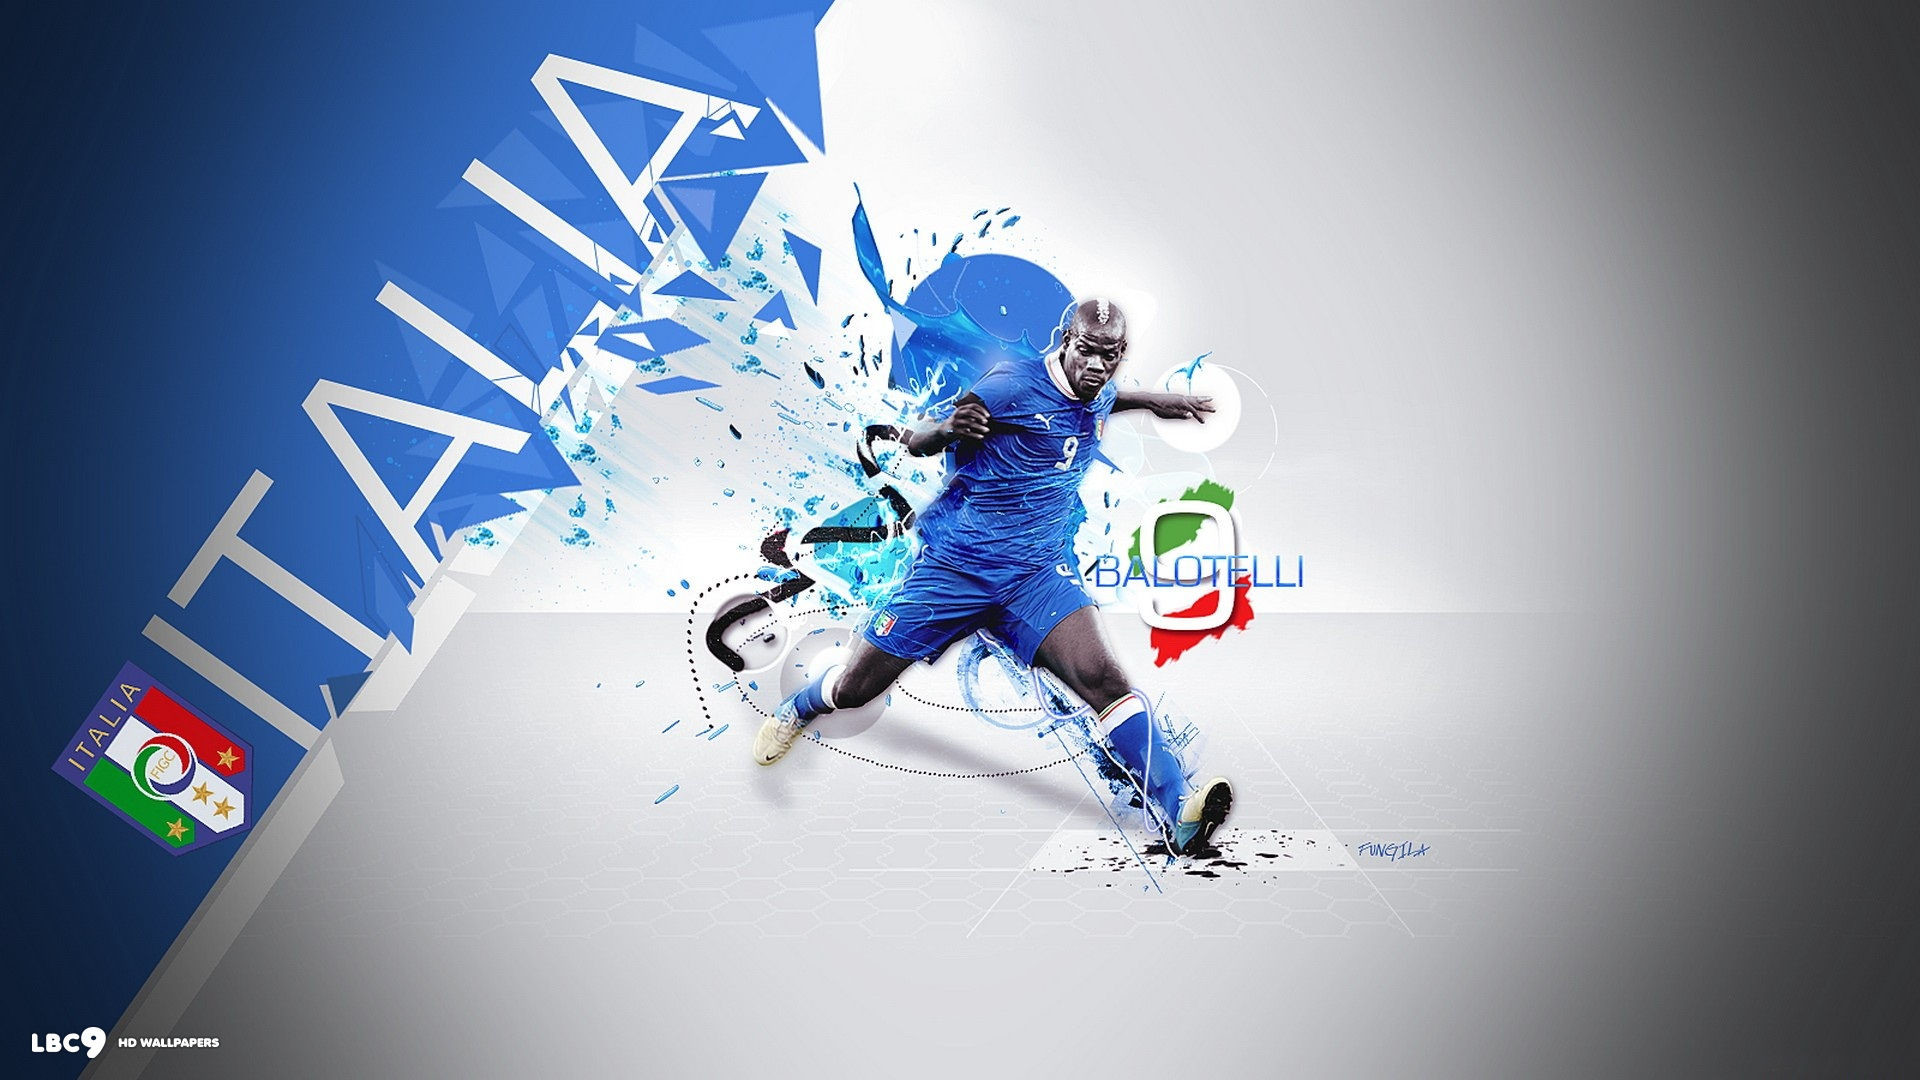 1920x1080 euro 2012 italia balotelli wallpaper